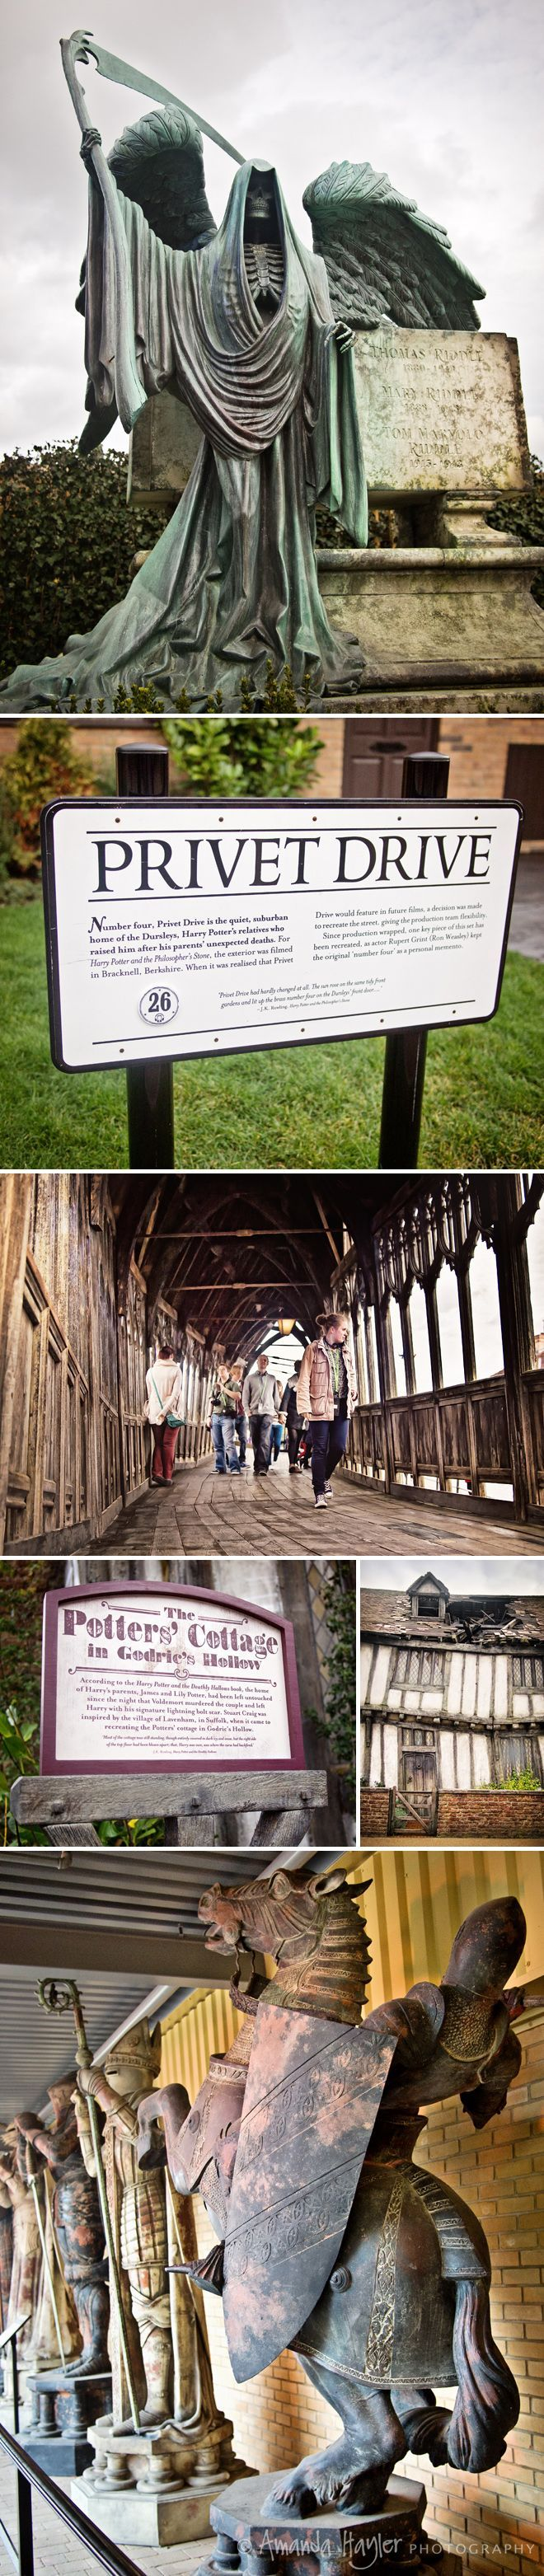 HP sets and locations you can actually visit; most glorious adventure you will have in London!